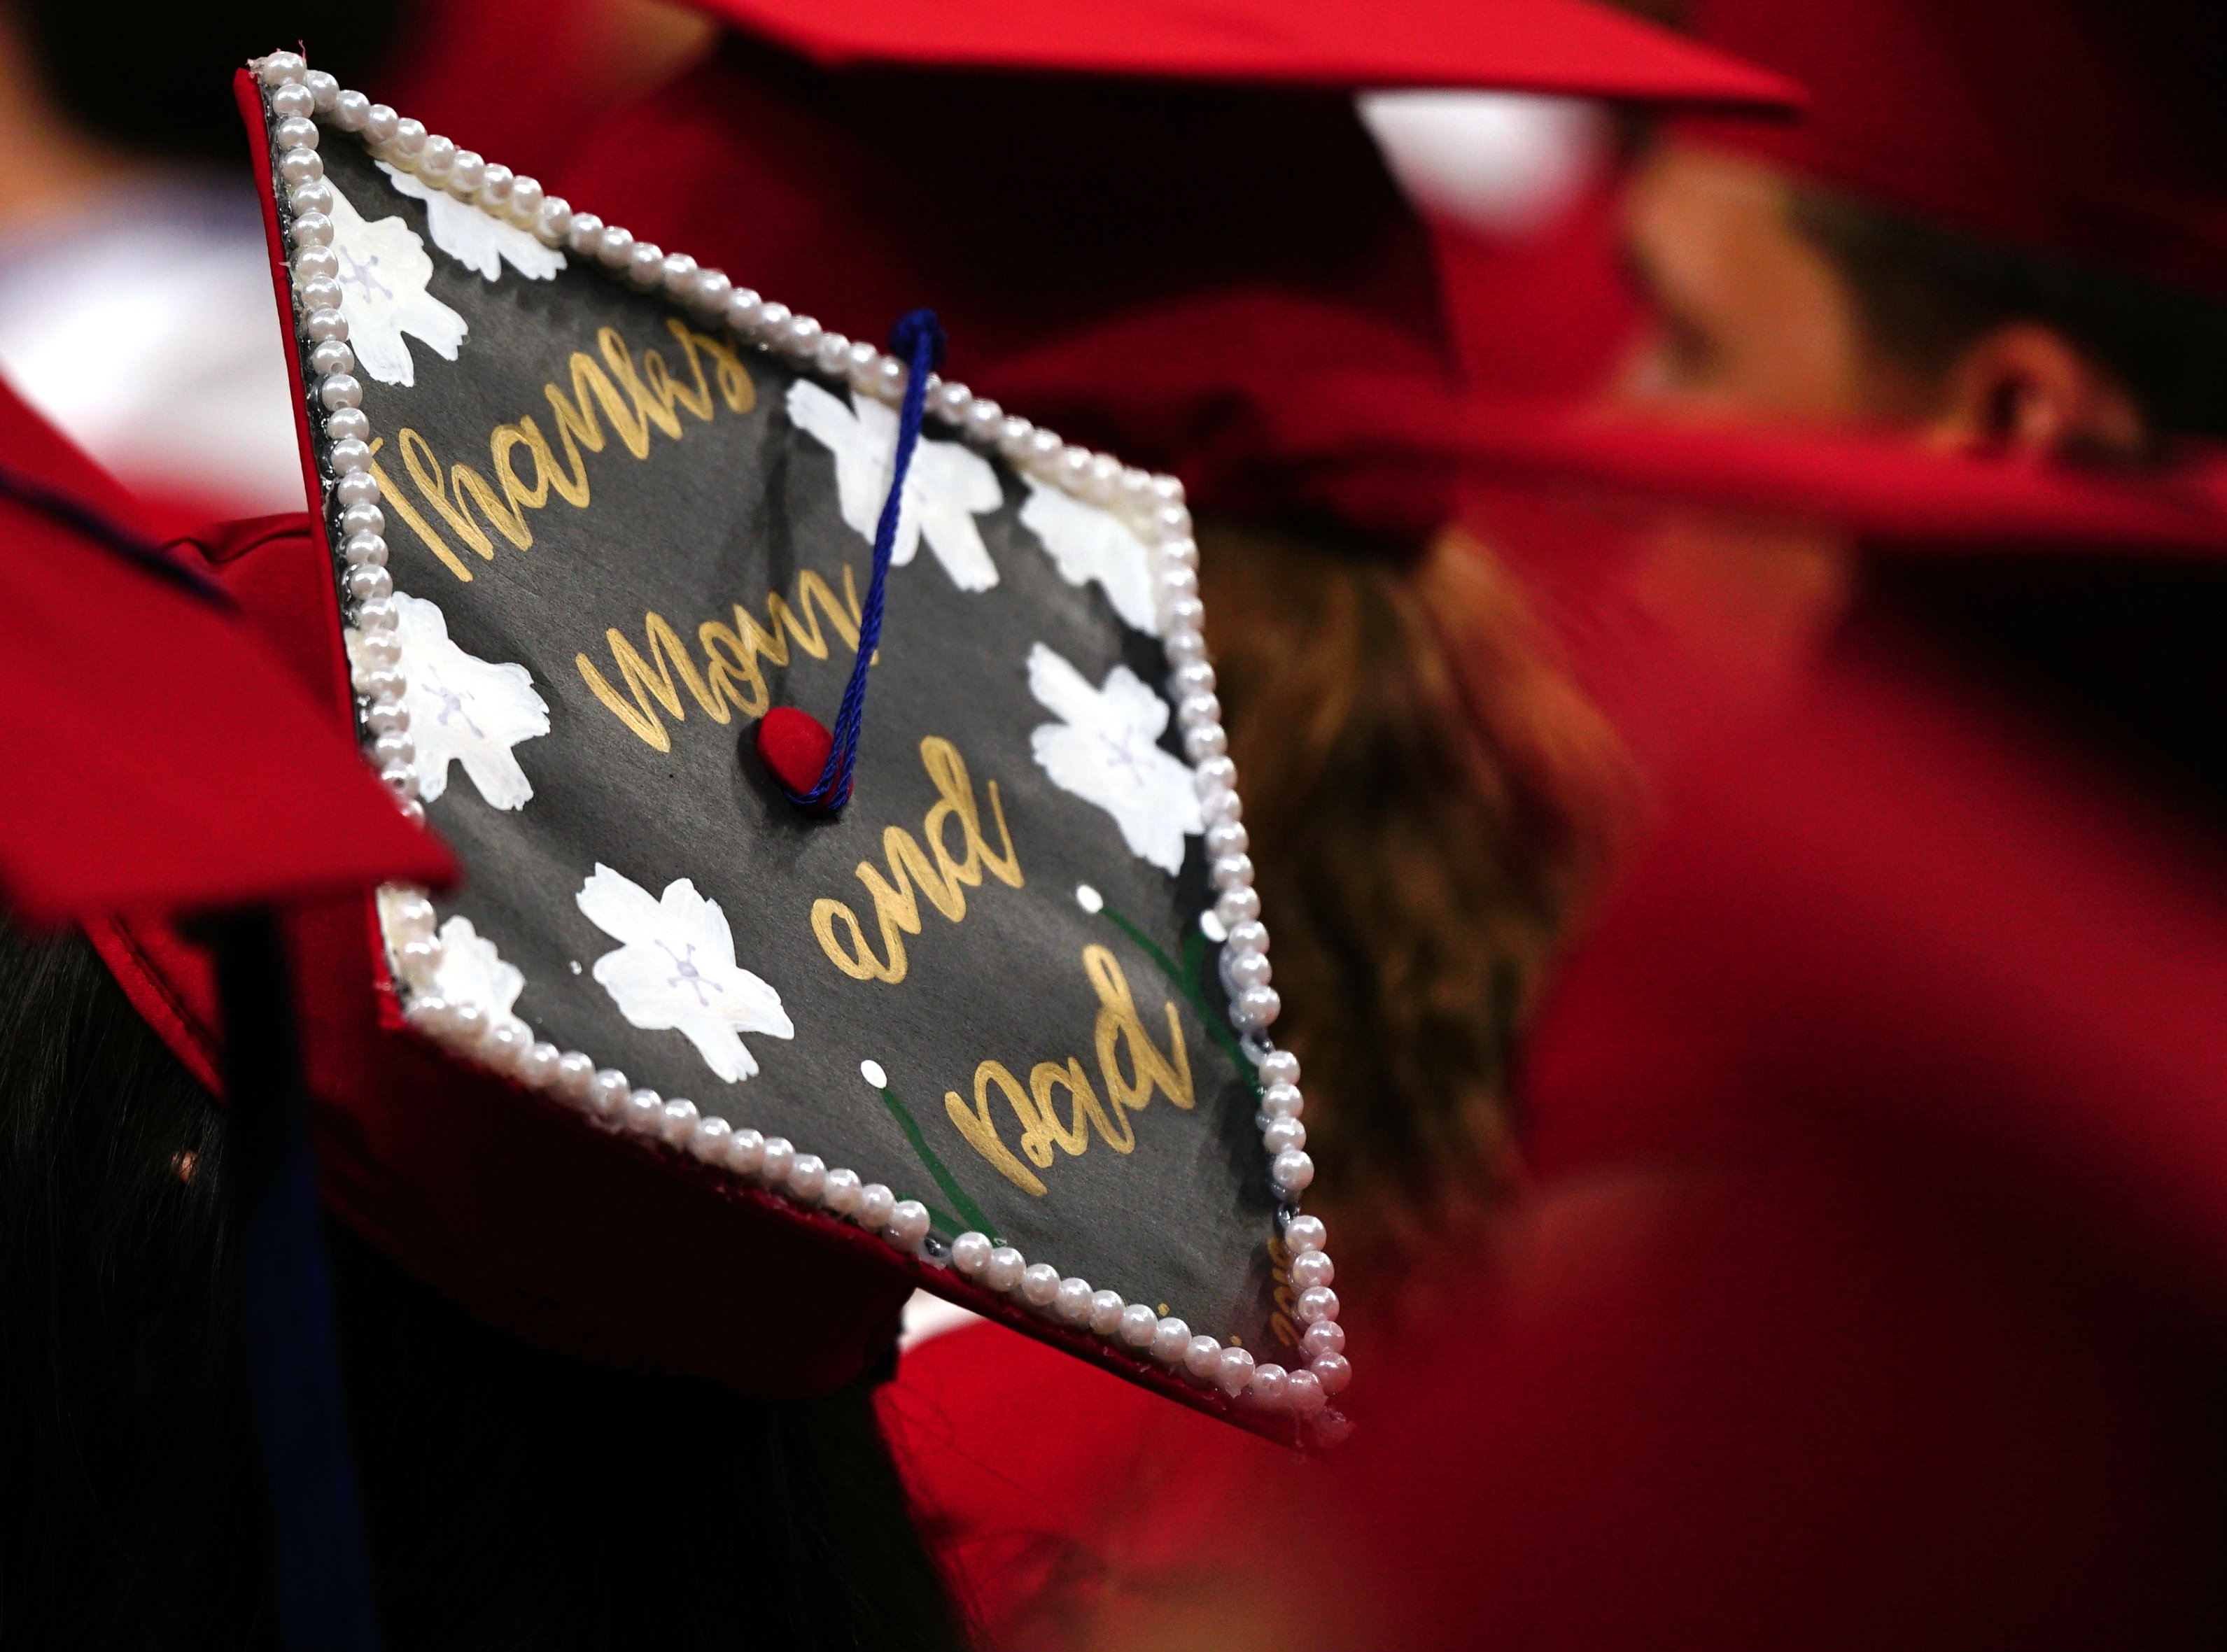 A graduate holds up her diploma cover for a photo